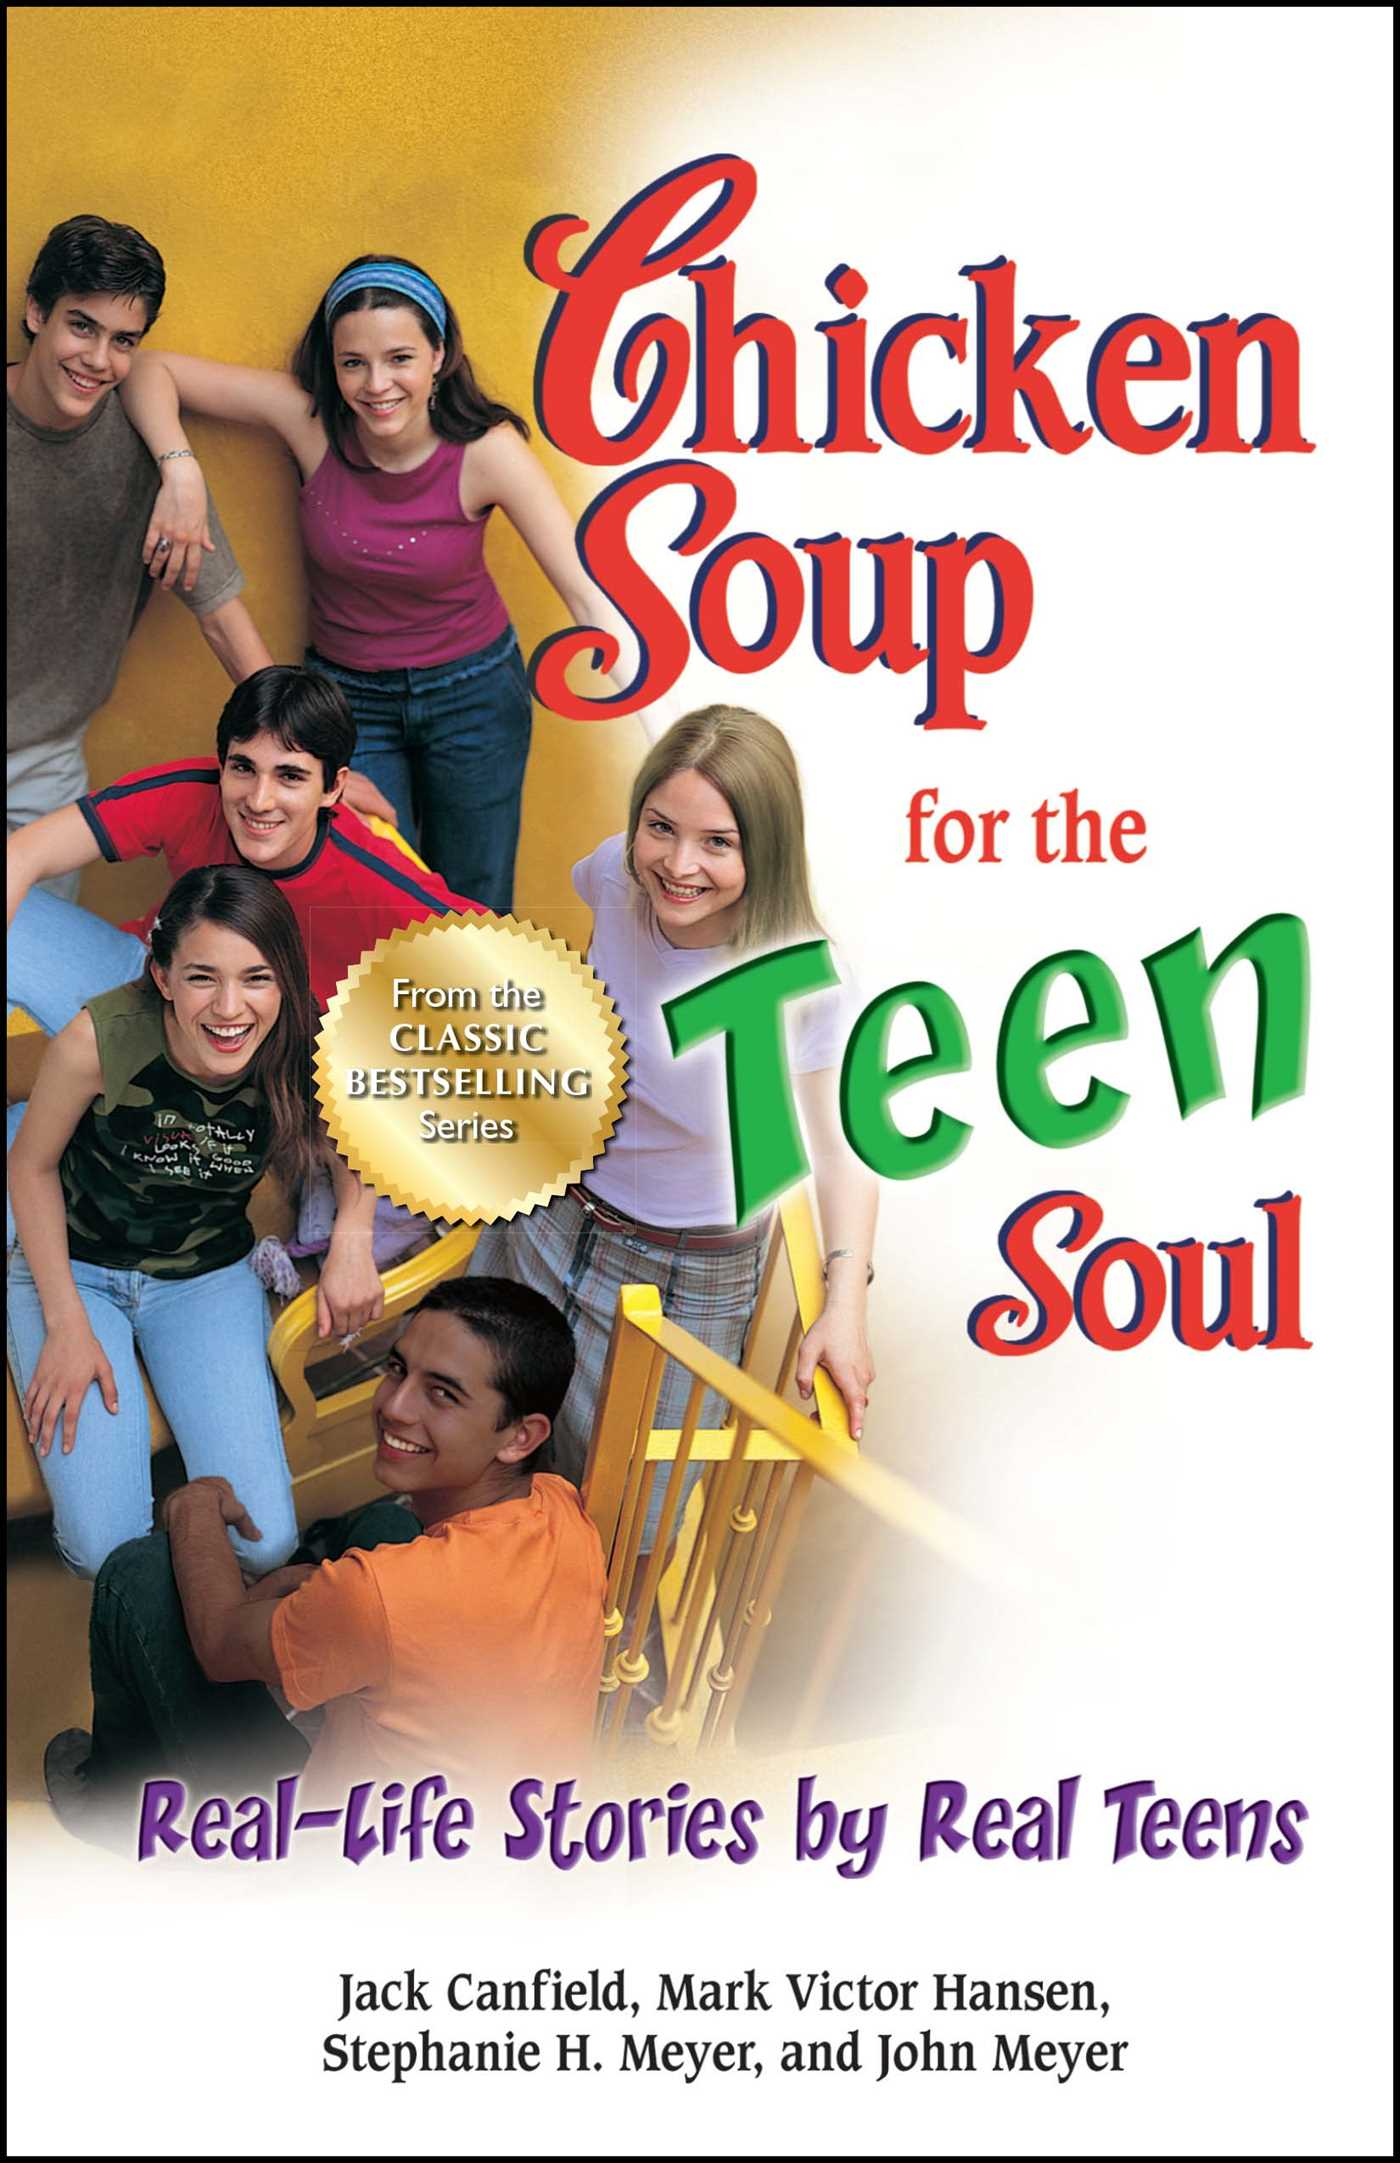 Chicken soup for the teen soul 9781623610807 hr